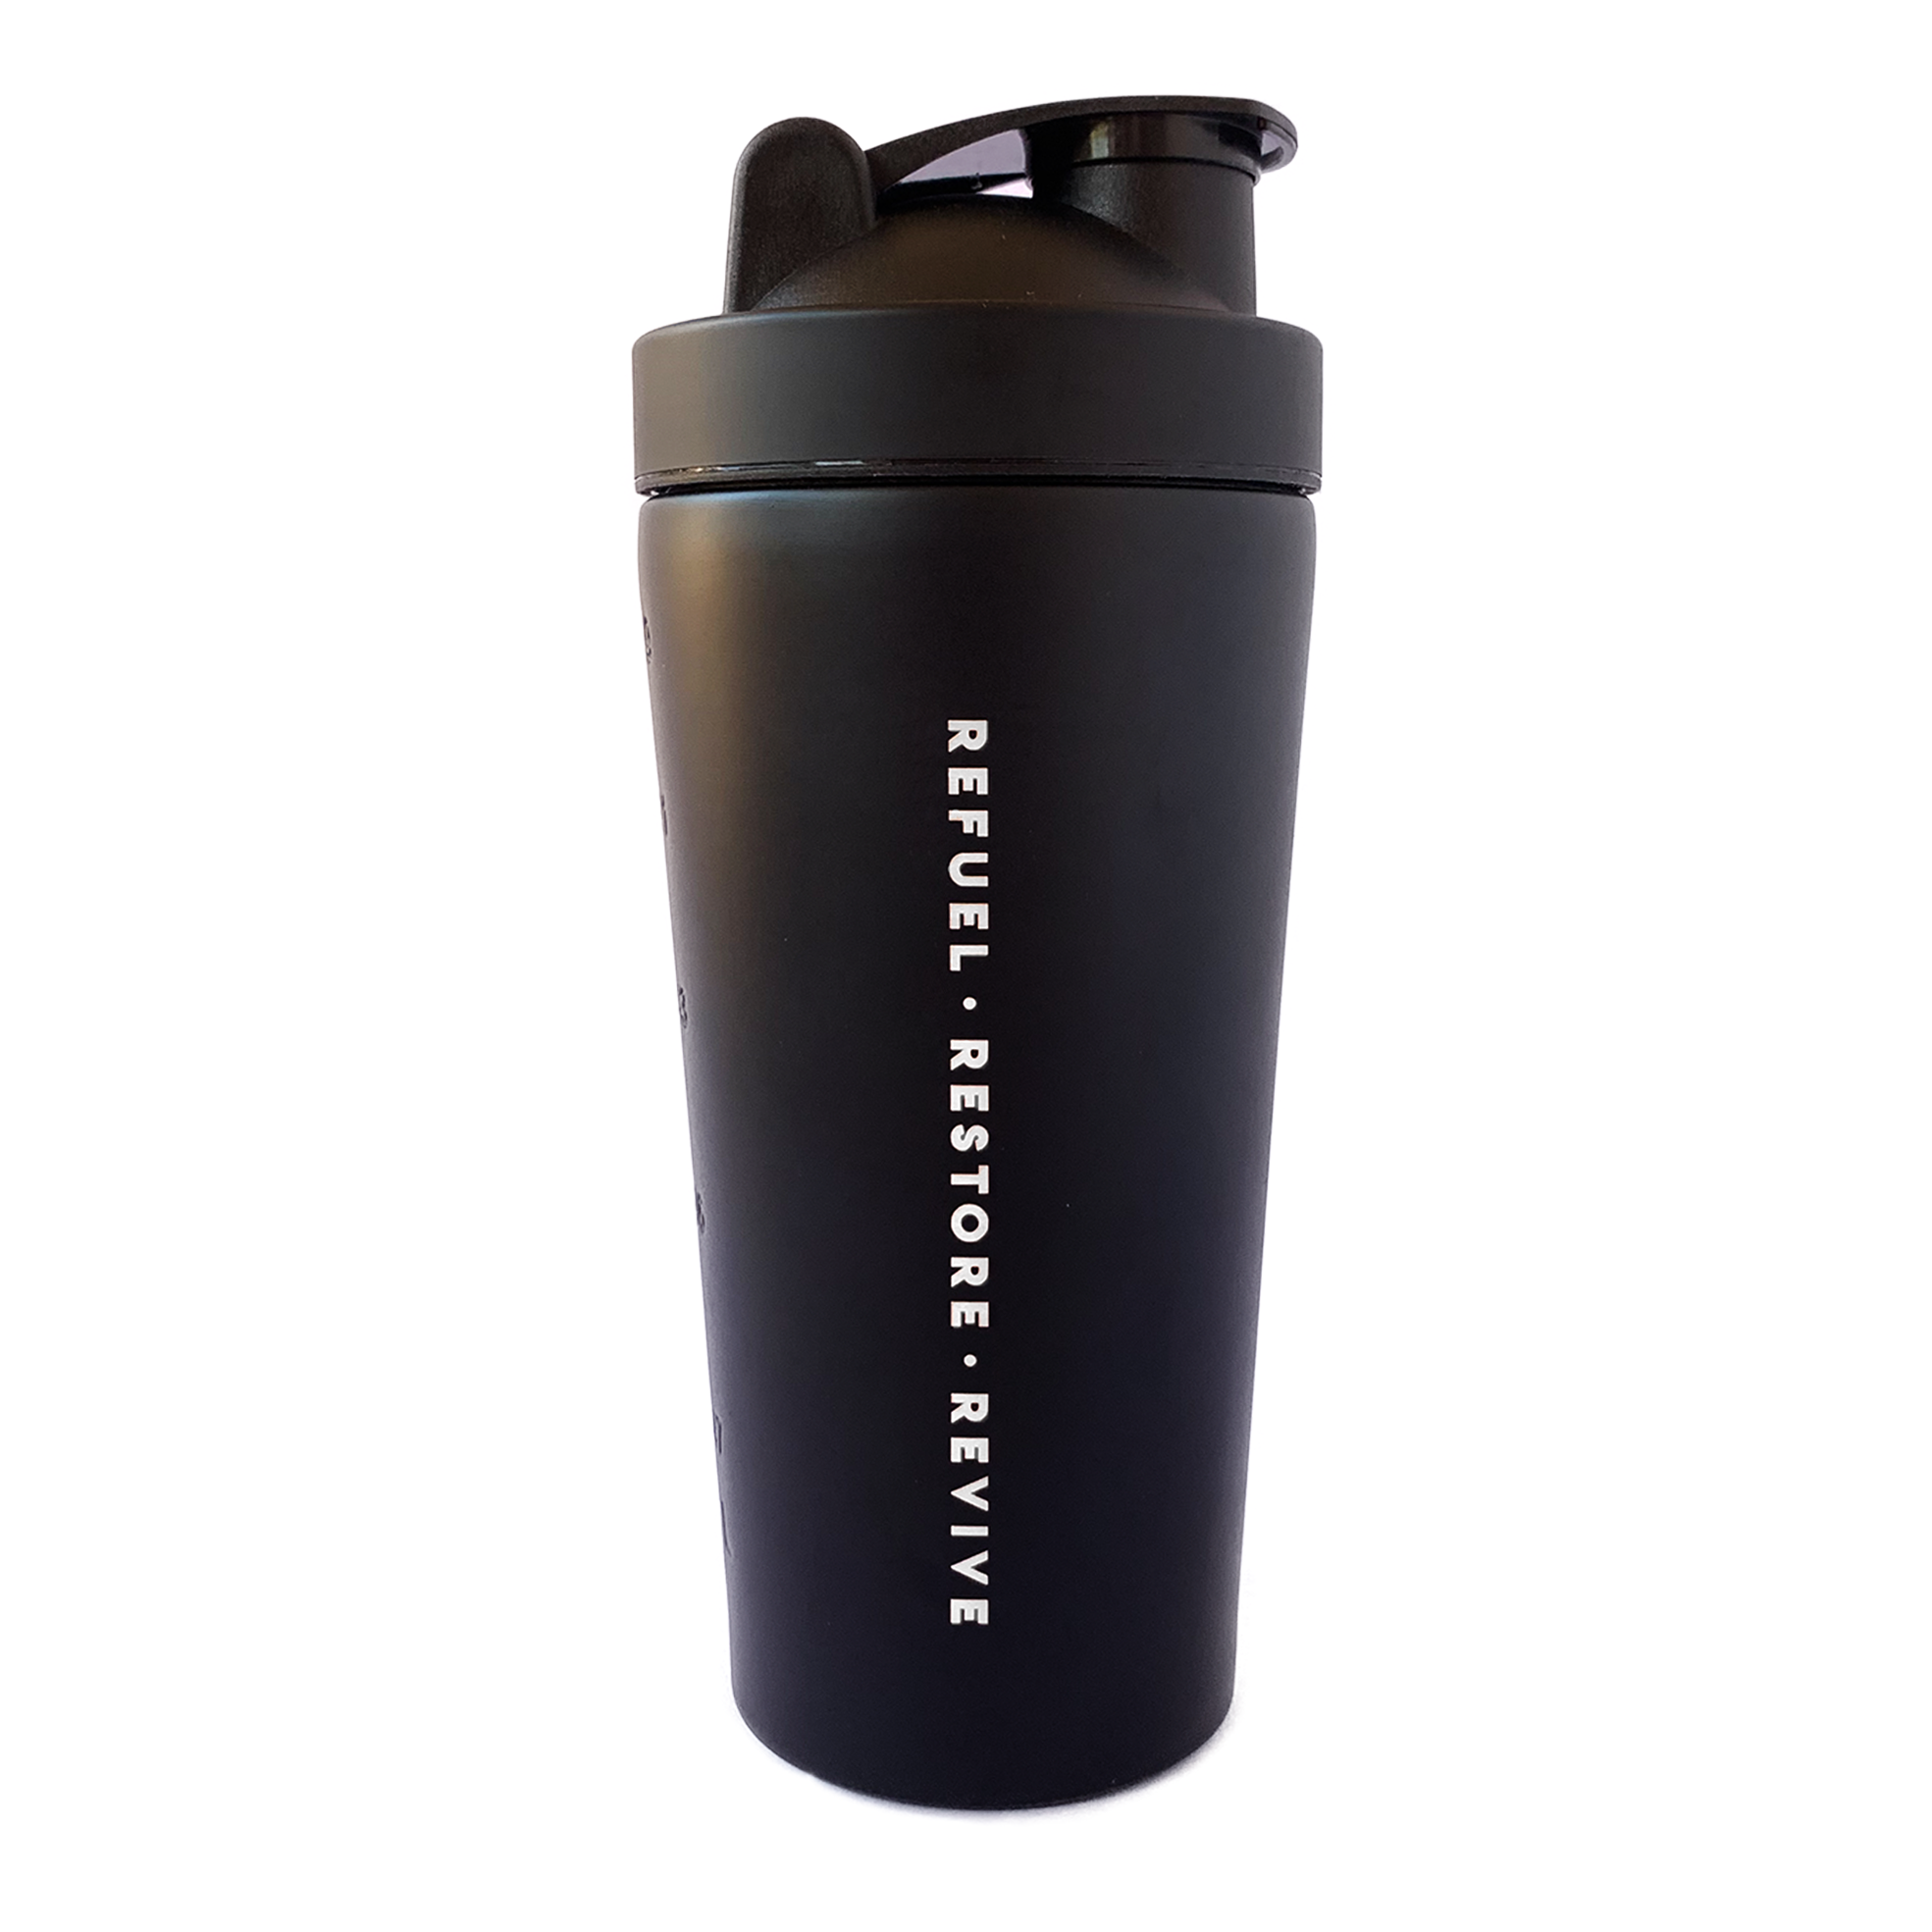 Matte Black Stainless Steel Shaker